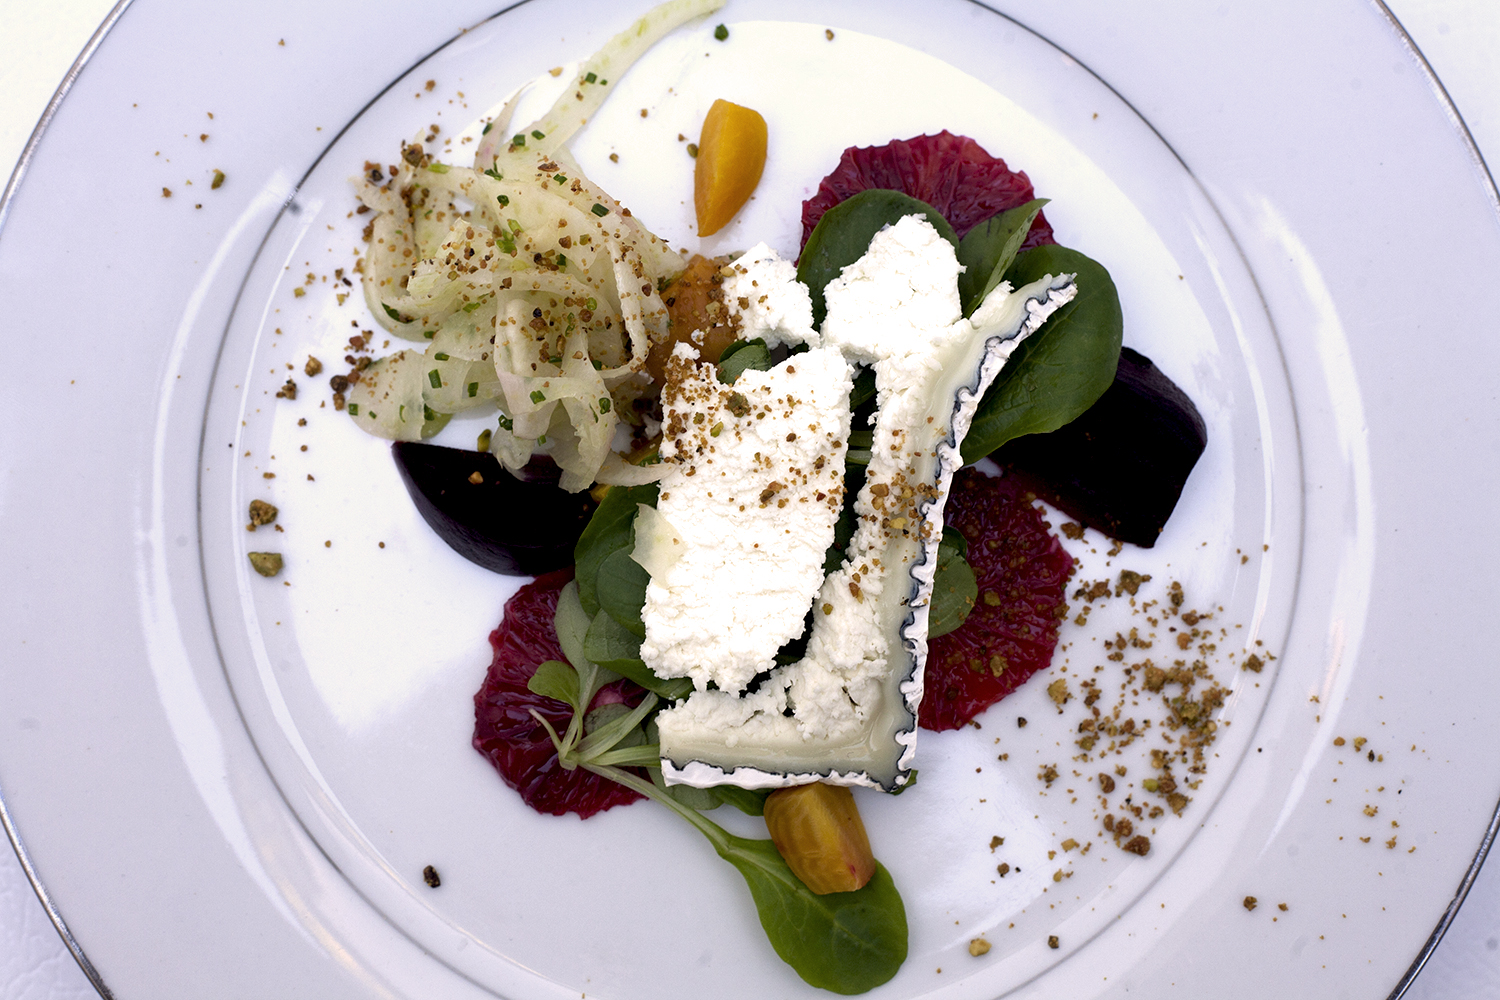 Market beets, Humboldt fog goat cheese, blood orange, shaved fennel, mache and pistachio